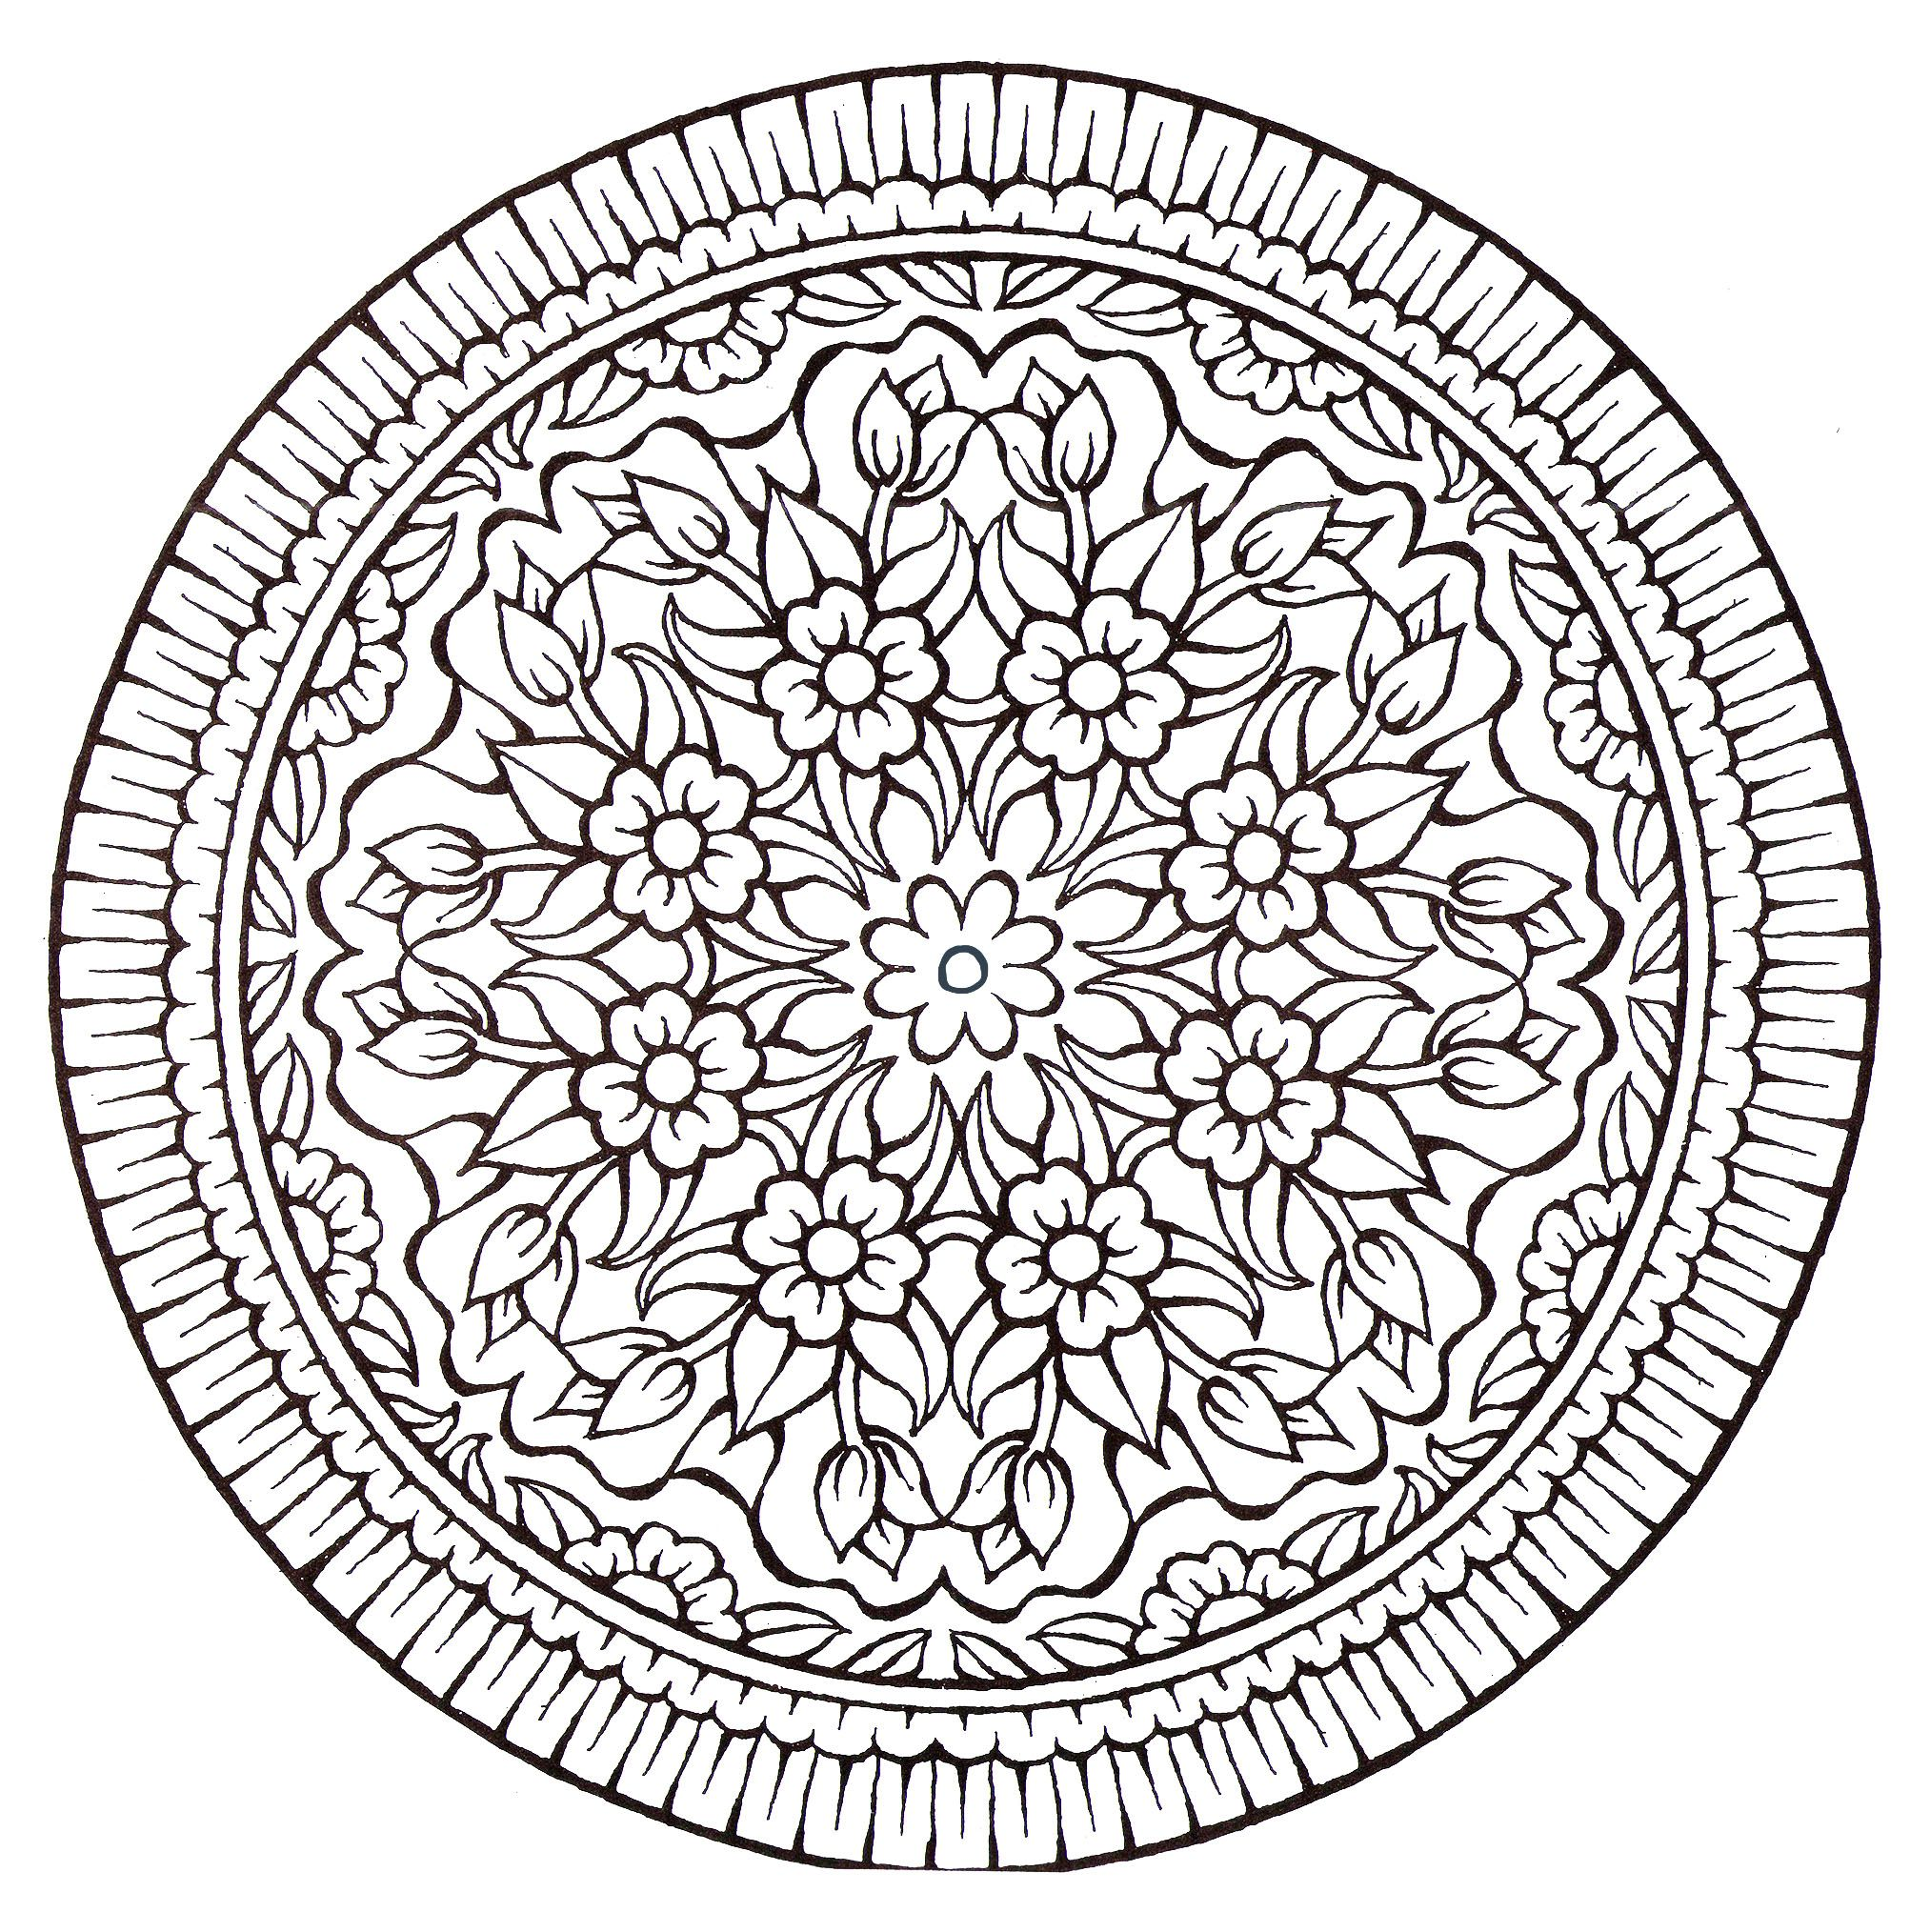 a mandala very u0027vintage style u0027 with a lot of flowers from the